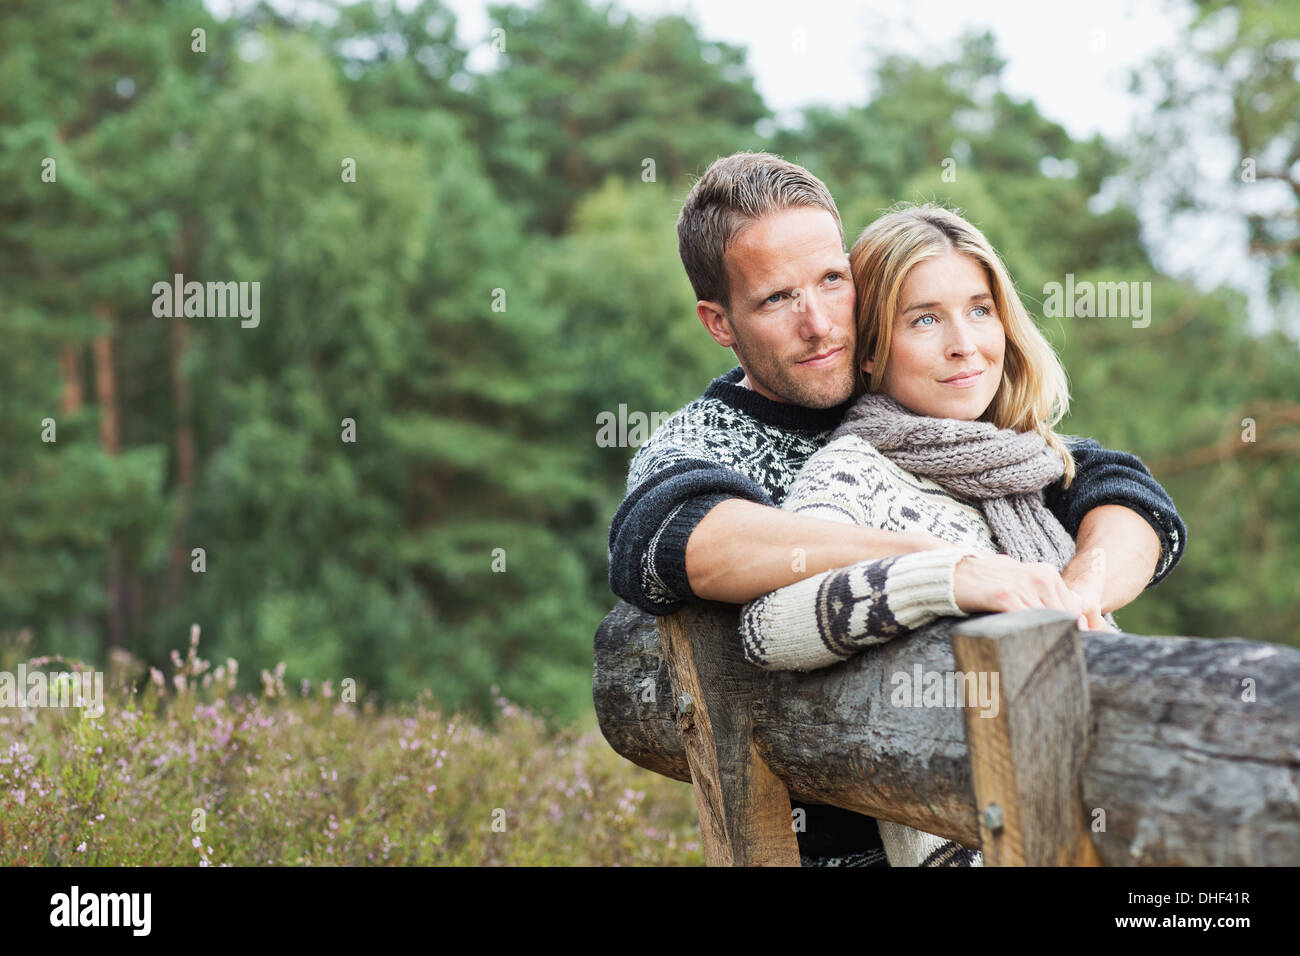 Mid adult couple on bench looking away - Stock Image